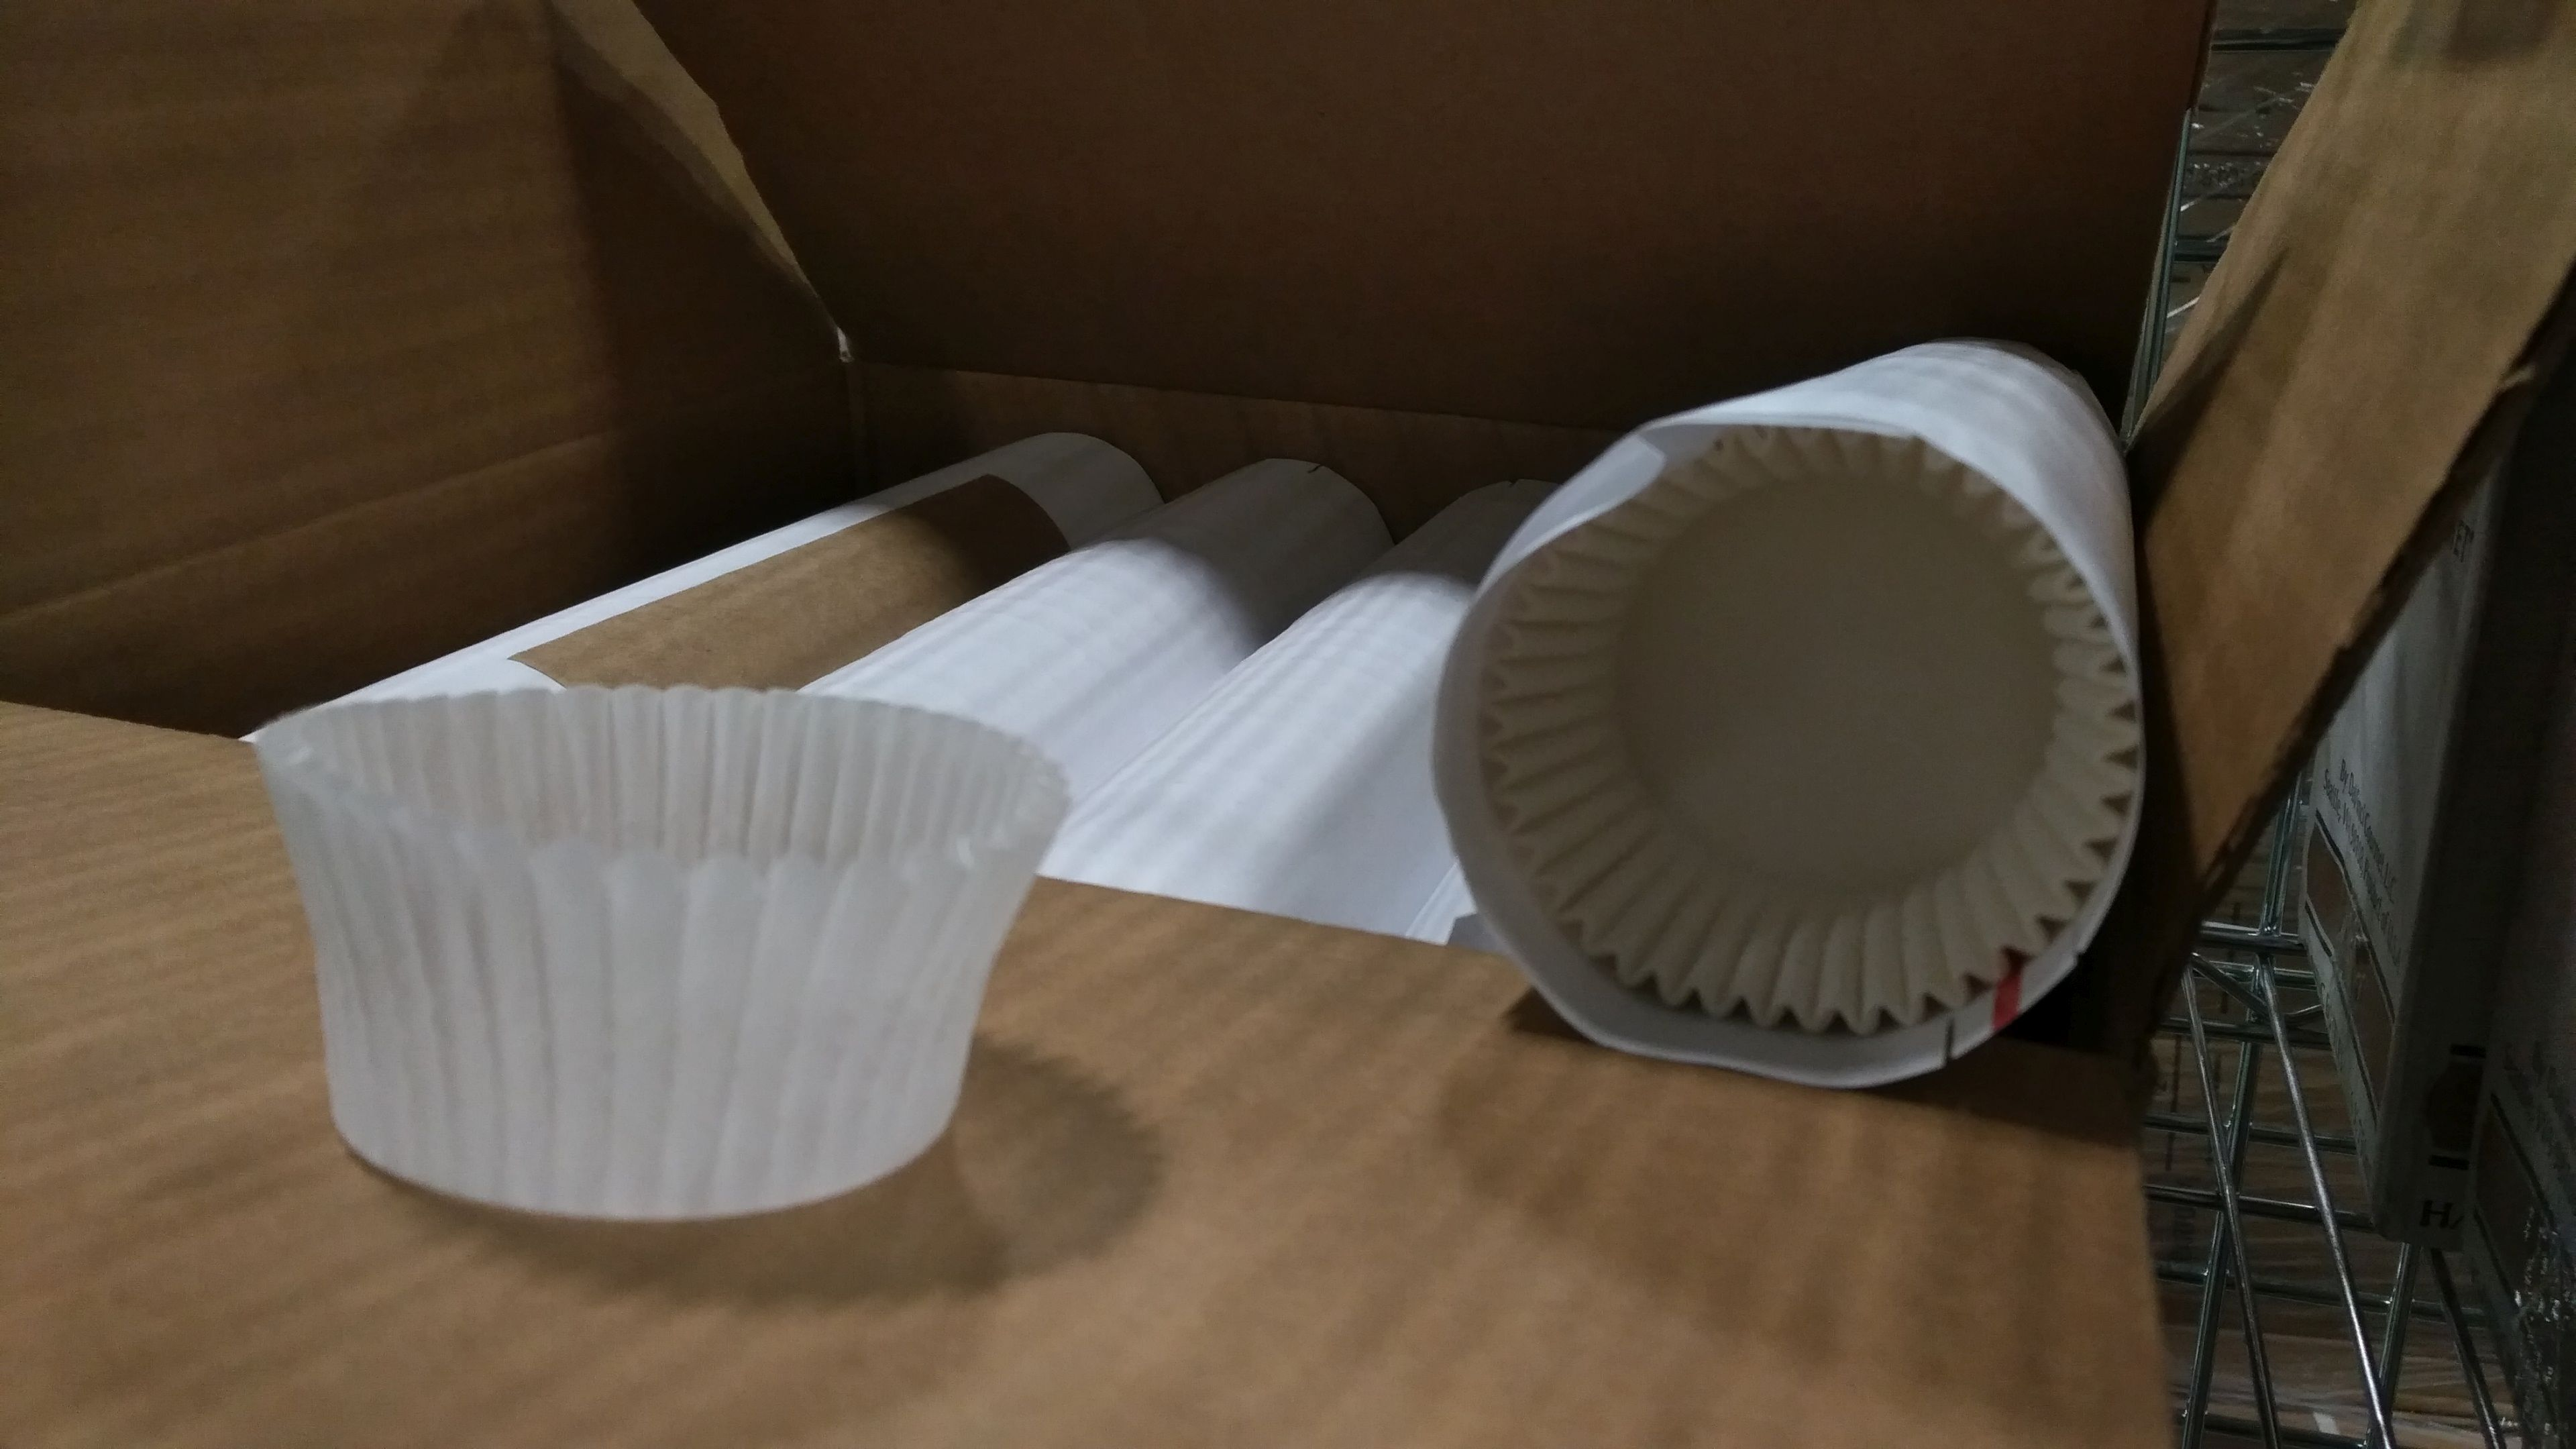 "Lot 56 - White Baking Cups, 2"" x 4.5"" x 1.25"" - Lot of 5000"